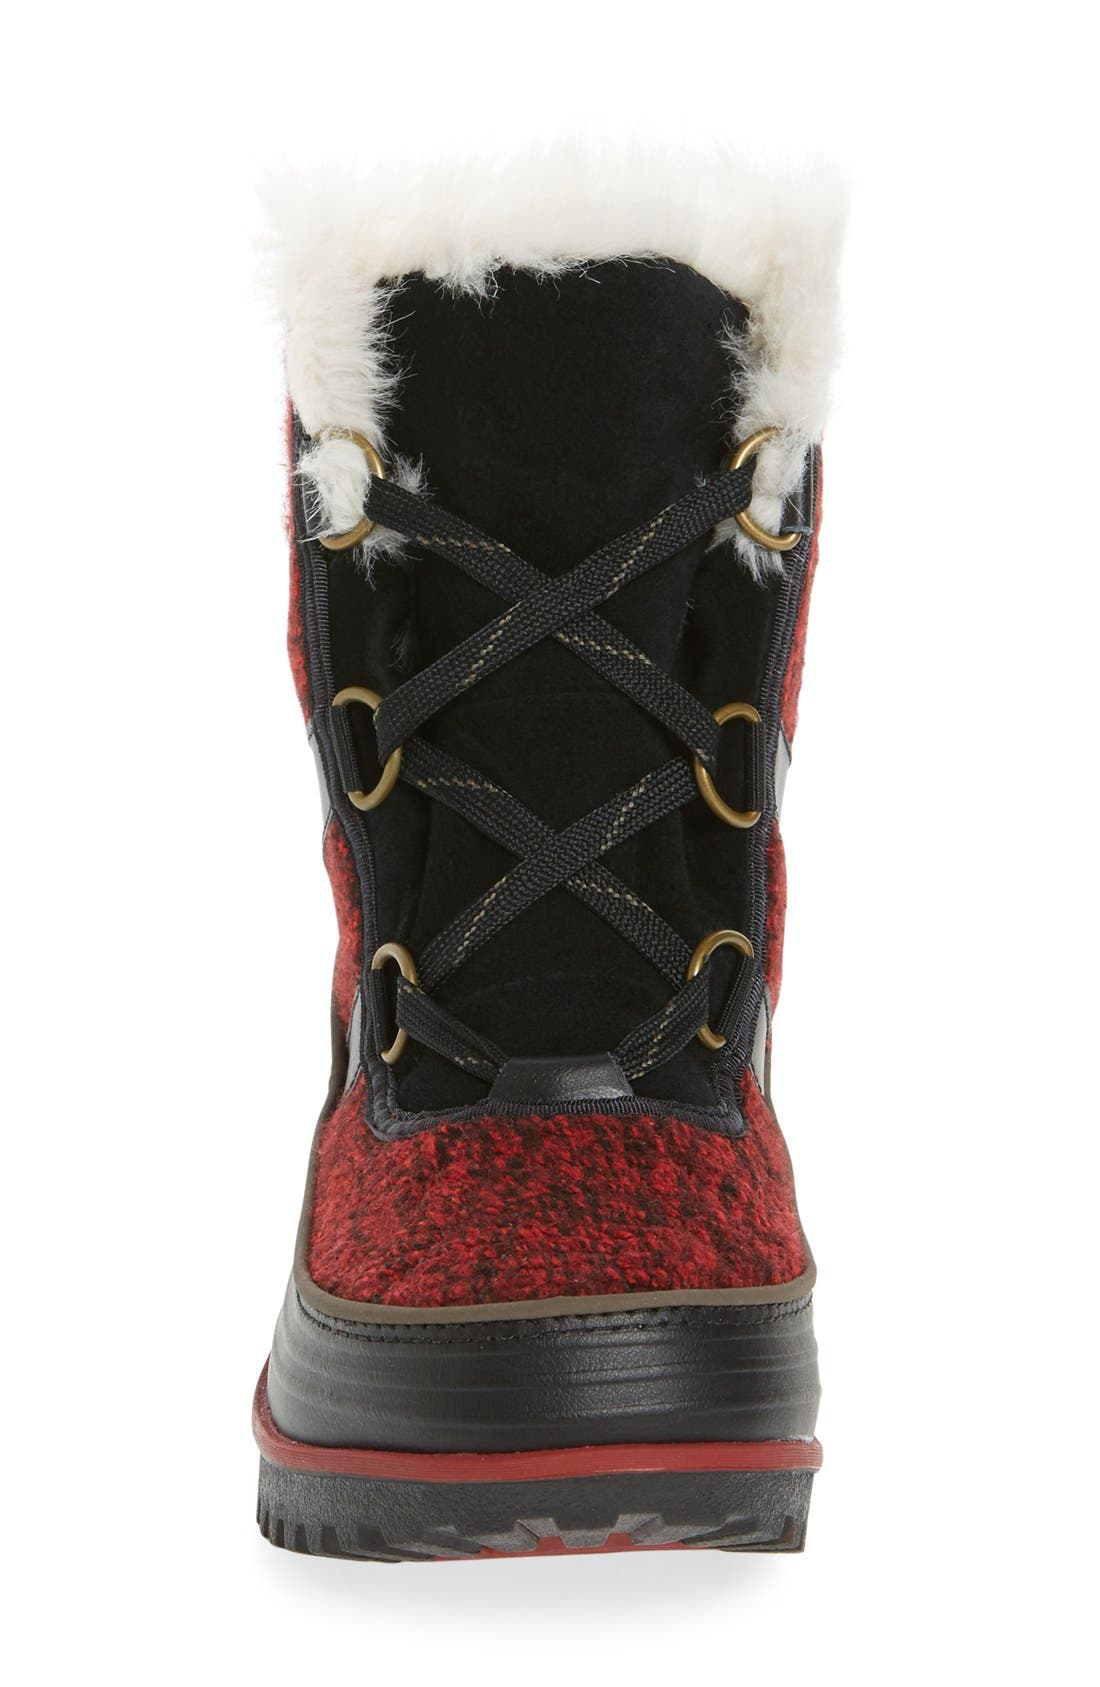 Alternate Image 3  - SOREL 'Tivoli II' Waterproof Boot (Women)